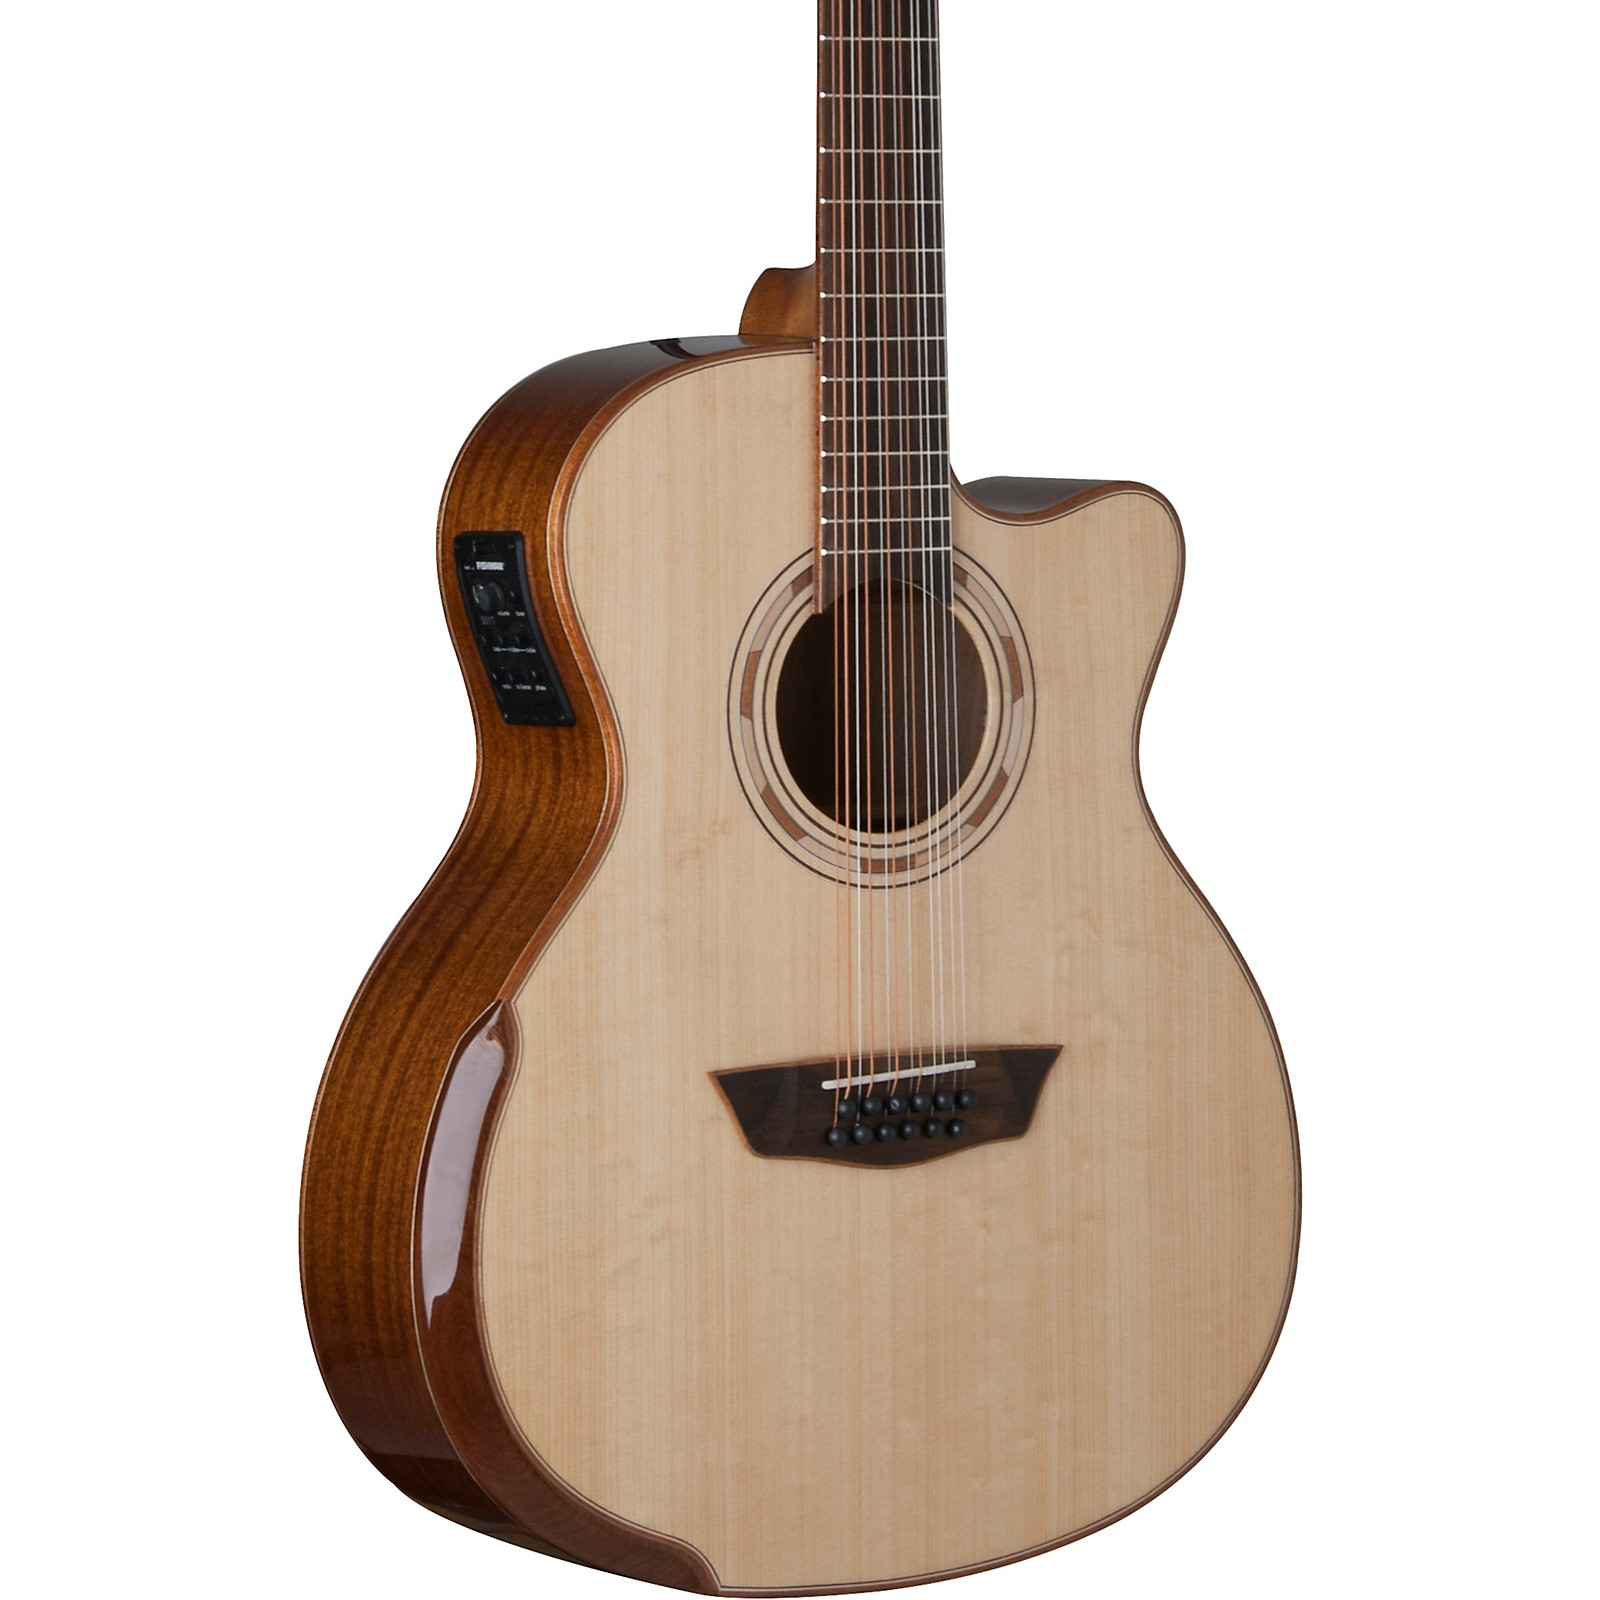 Washburn WCG15SCE12 12-String Acoustic-Electric Guitar